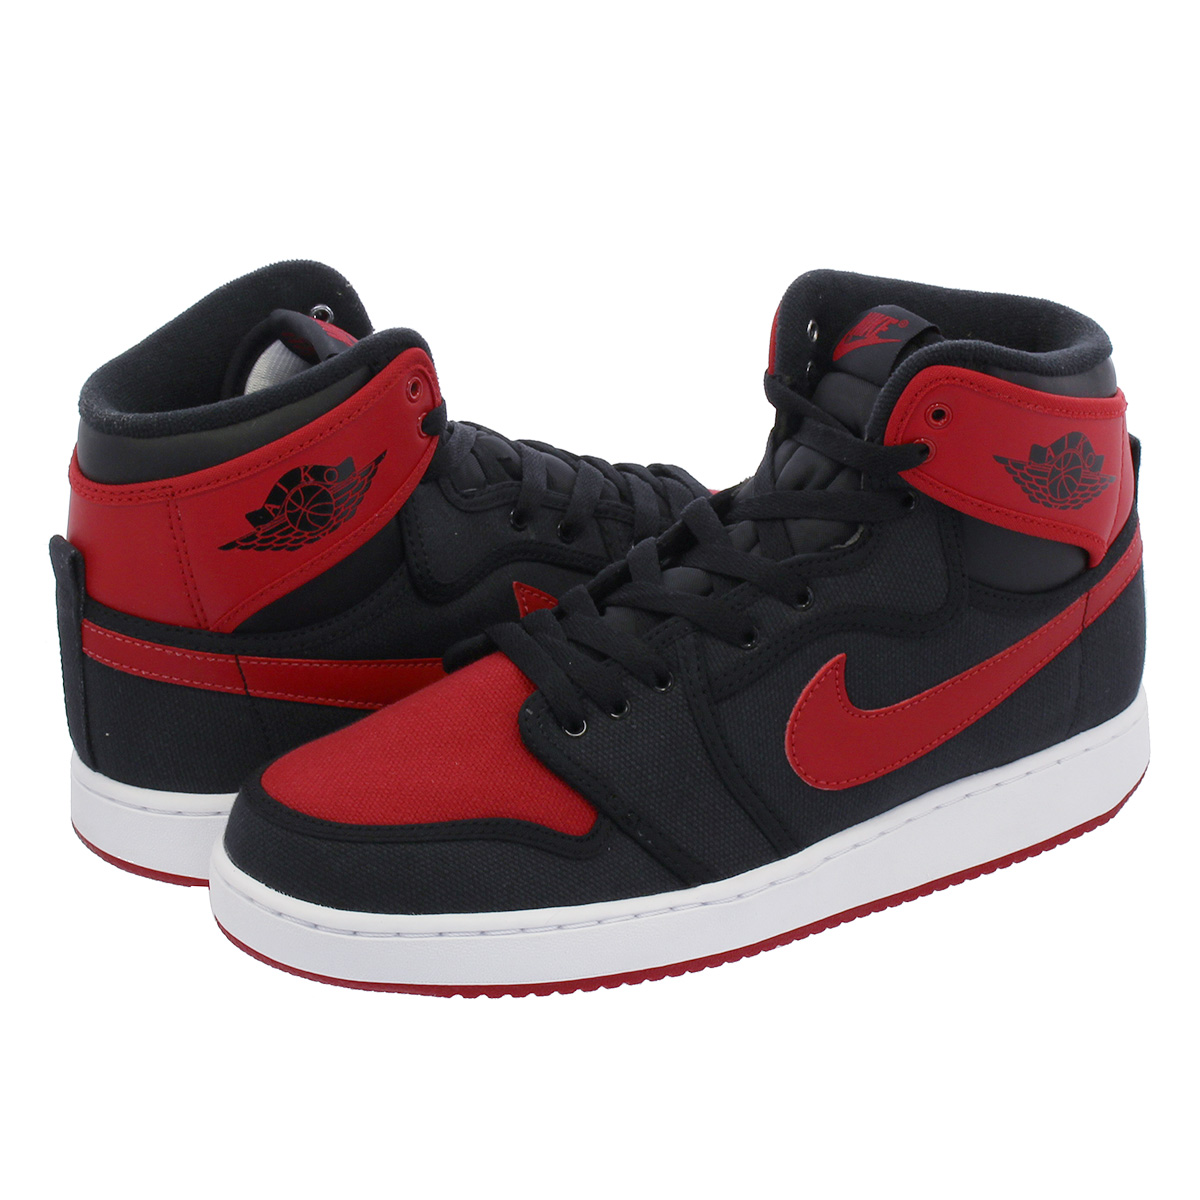 size 40 90370 e6554 NIKE AIR JORDAN 1 RETRO KO HIGH OG Nike Air Jordan 1 nostalgic KO high OG  BLACK/VARSITY RED/WHITE 638,471-001